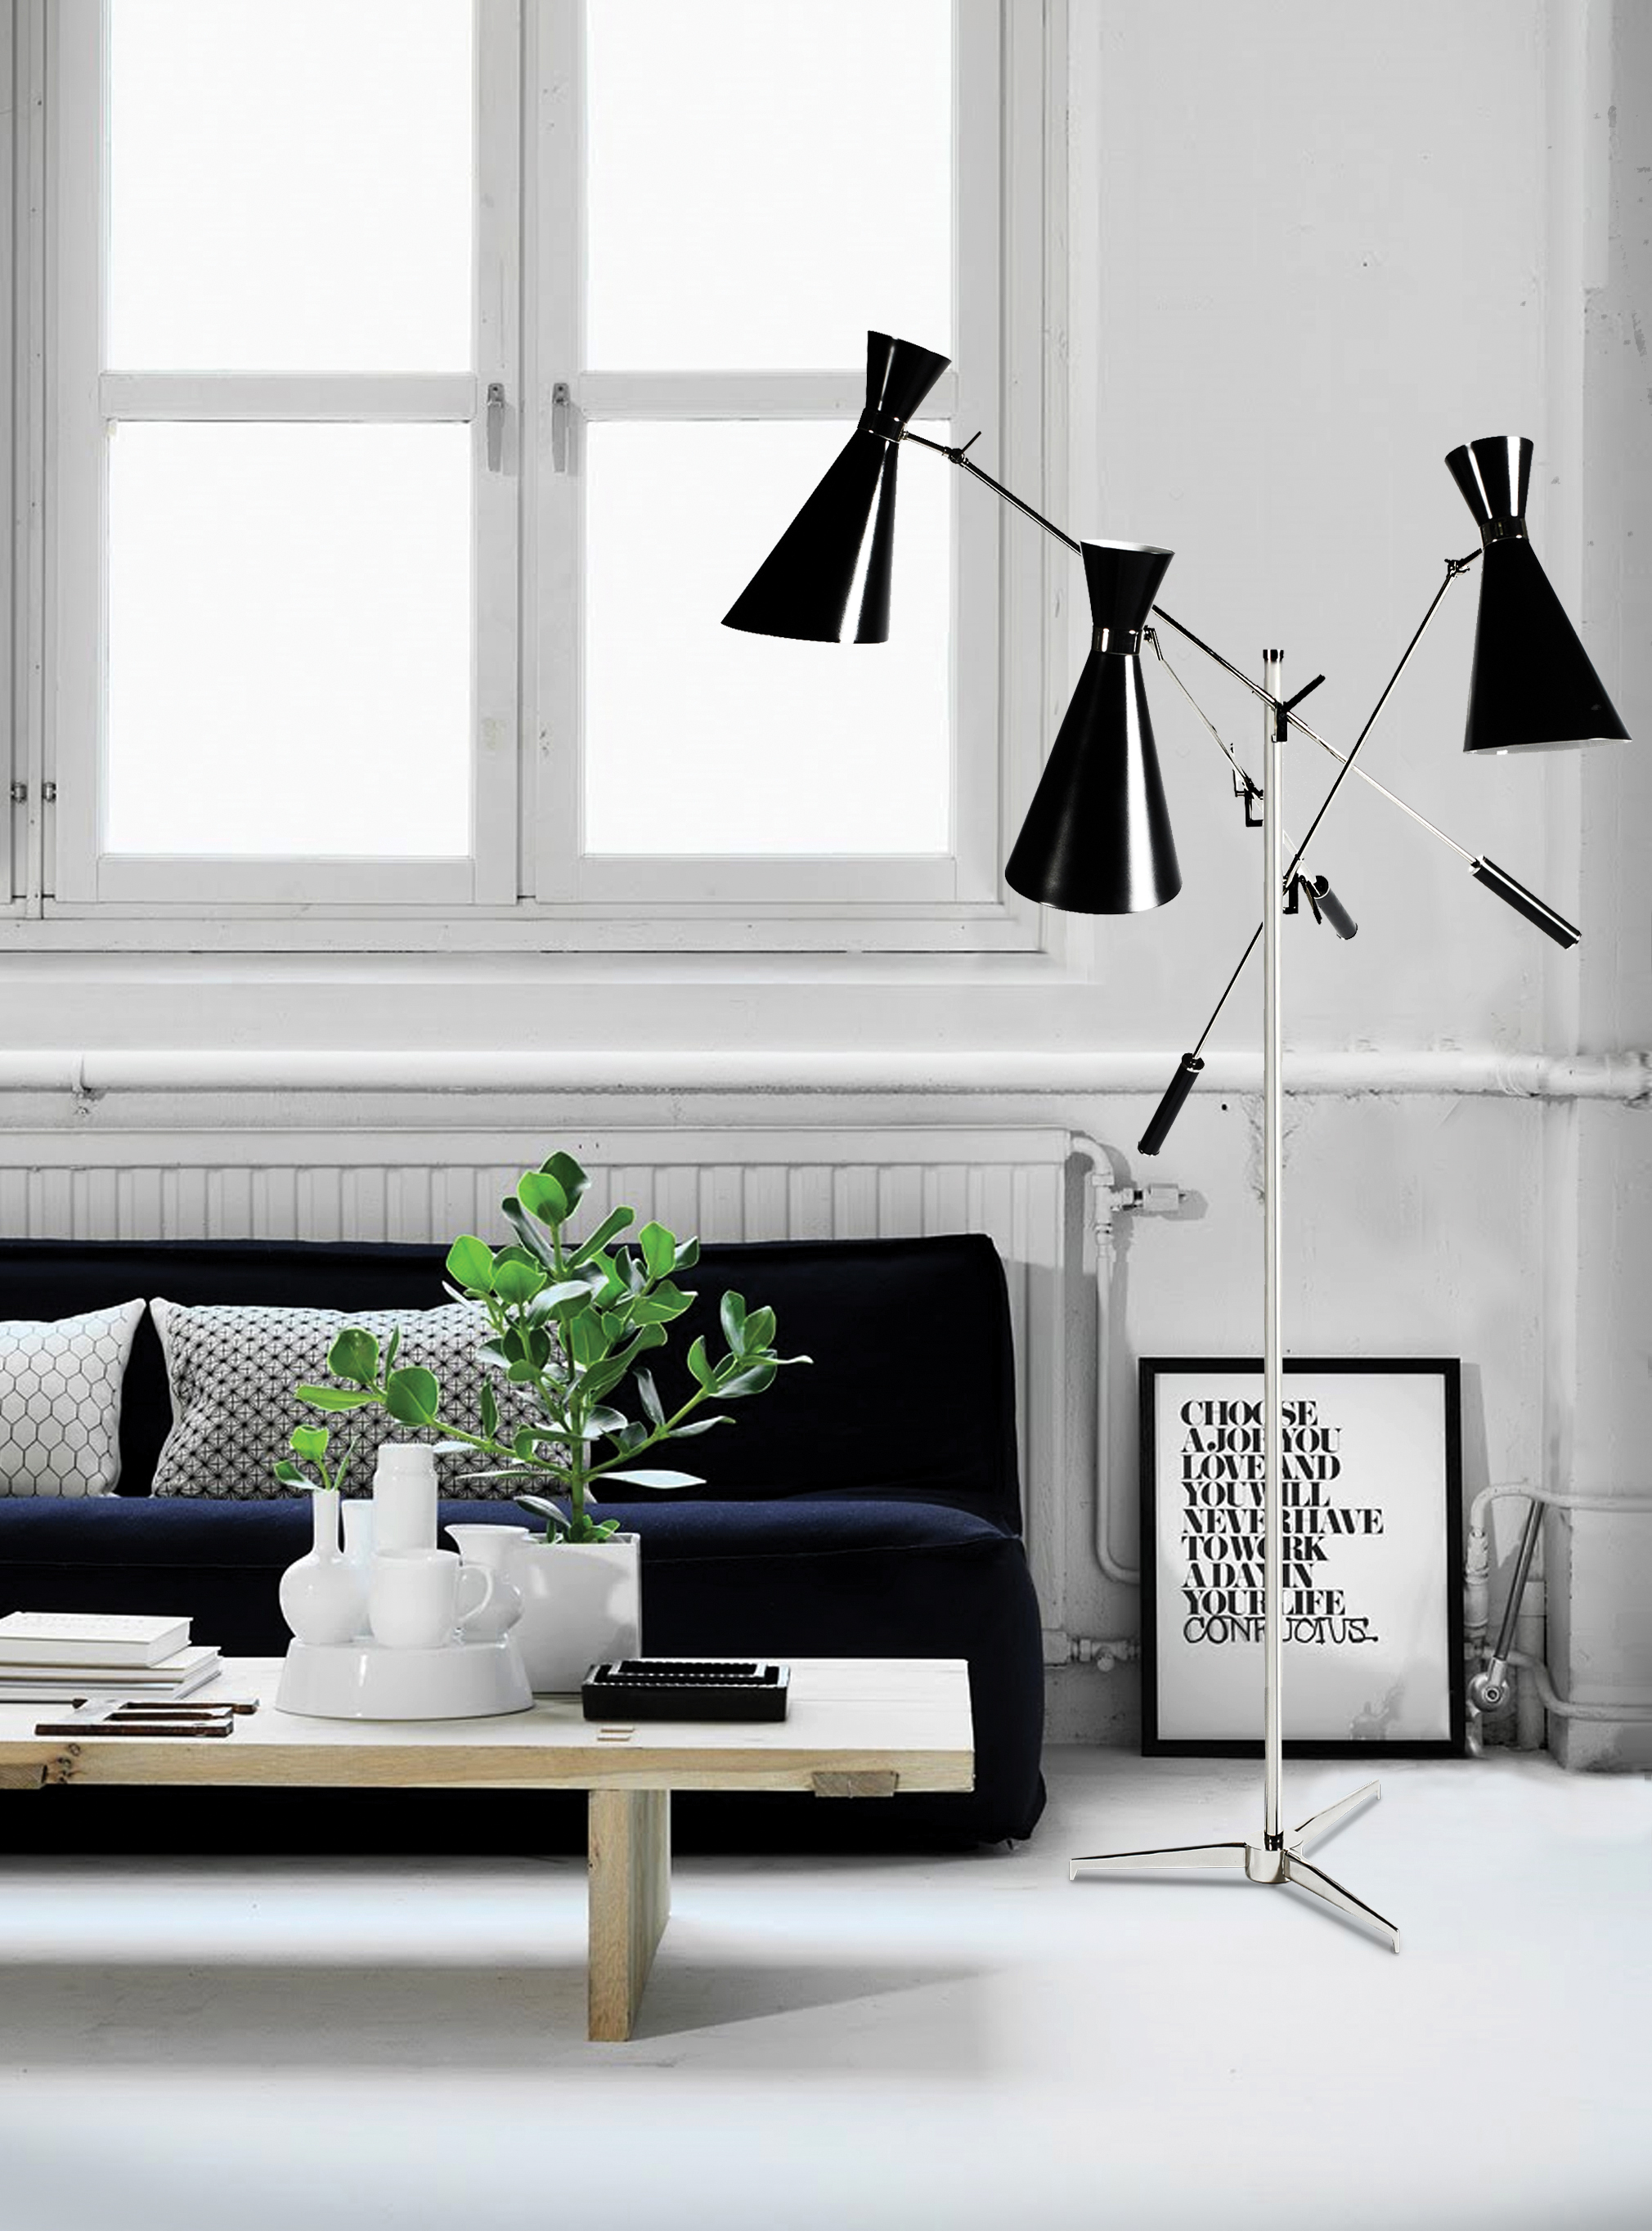 The 7 Home Decor Trends To Look Out For! 6 home decor trends The 7 Home Decor Trends To Look Out For! The 7 Home Decor Trends To Look Out For 6 1